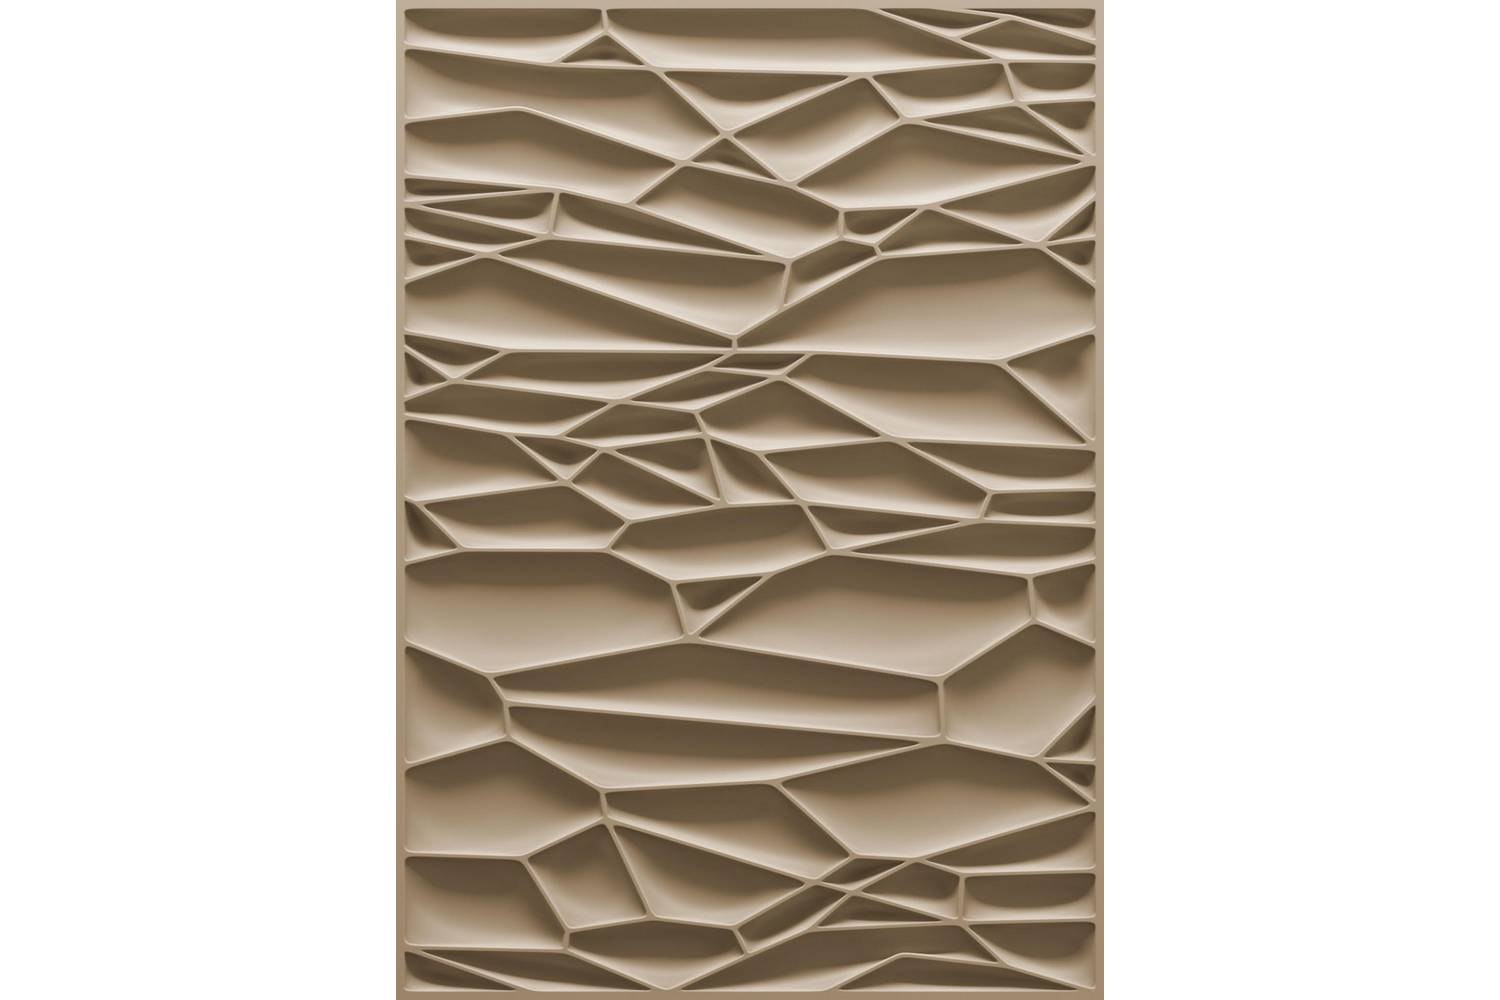 Dry Woven Rug by Marcel Wanders for Moooi Carpets